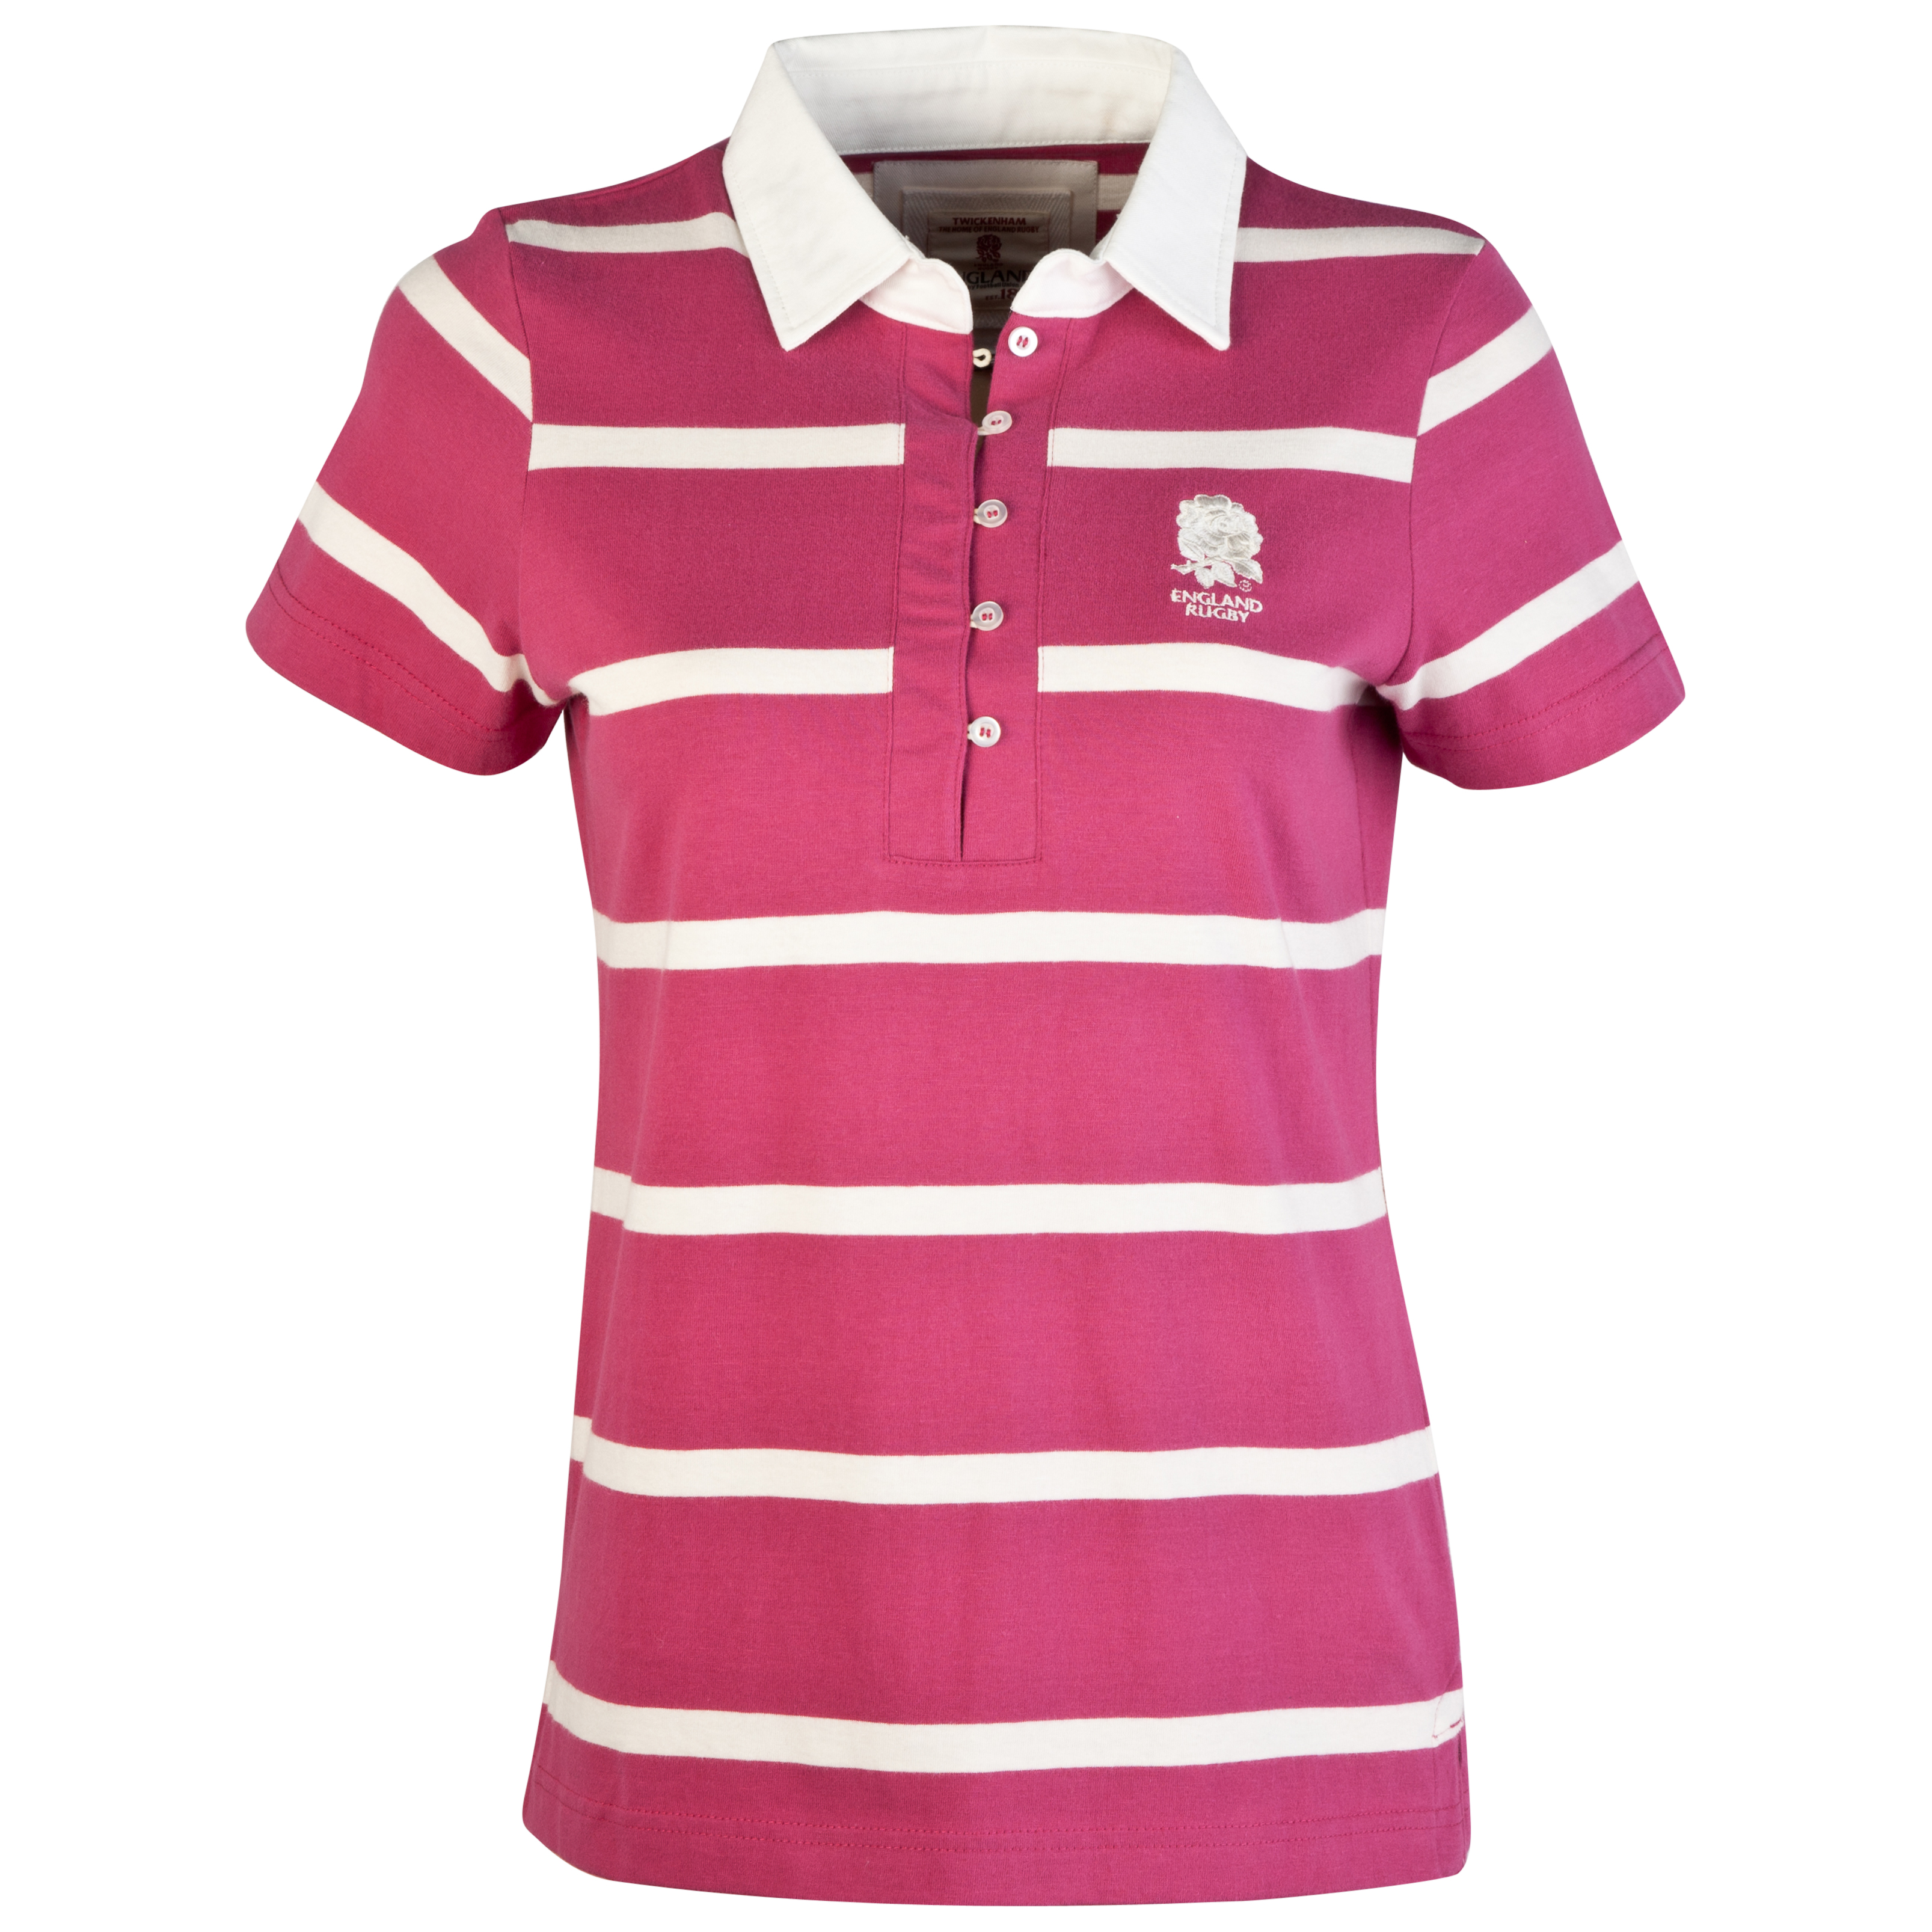 England Rugby Authentic Collection Striped Polo - Pink/Cream - Womens